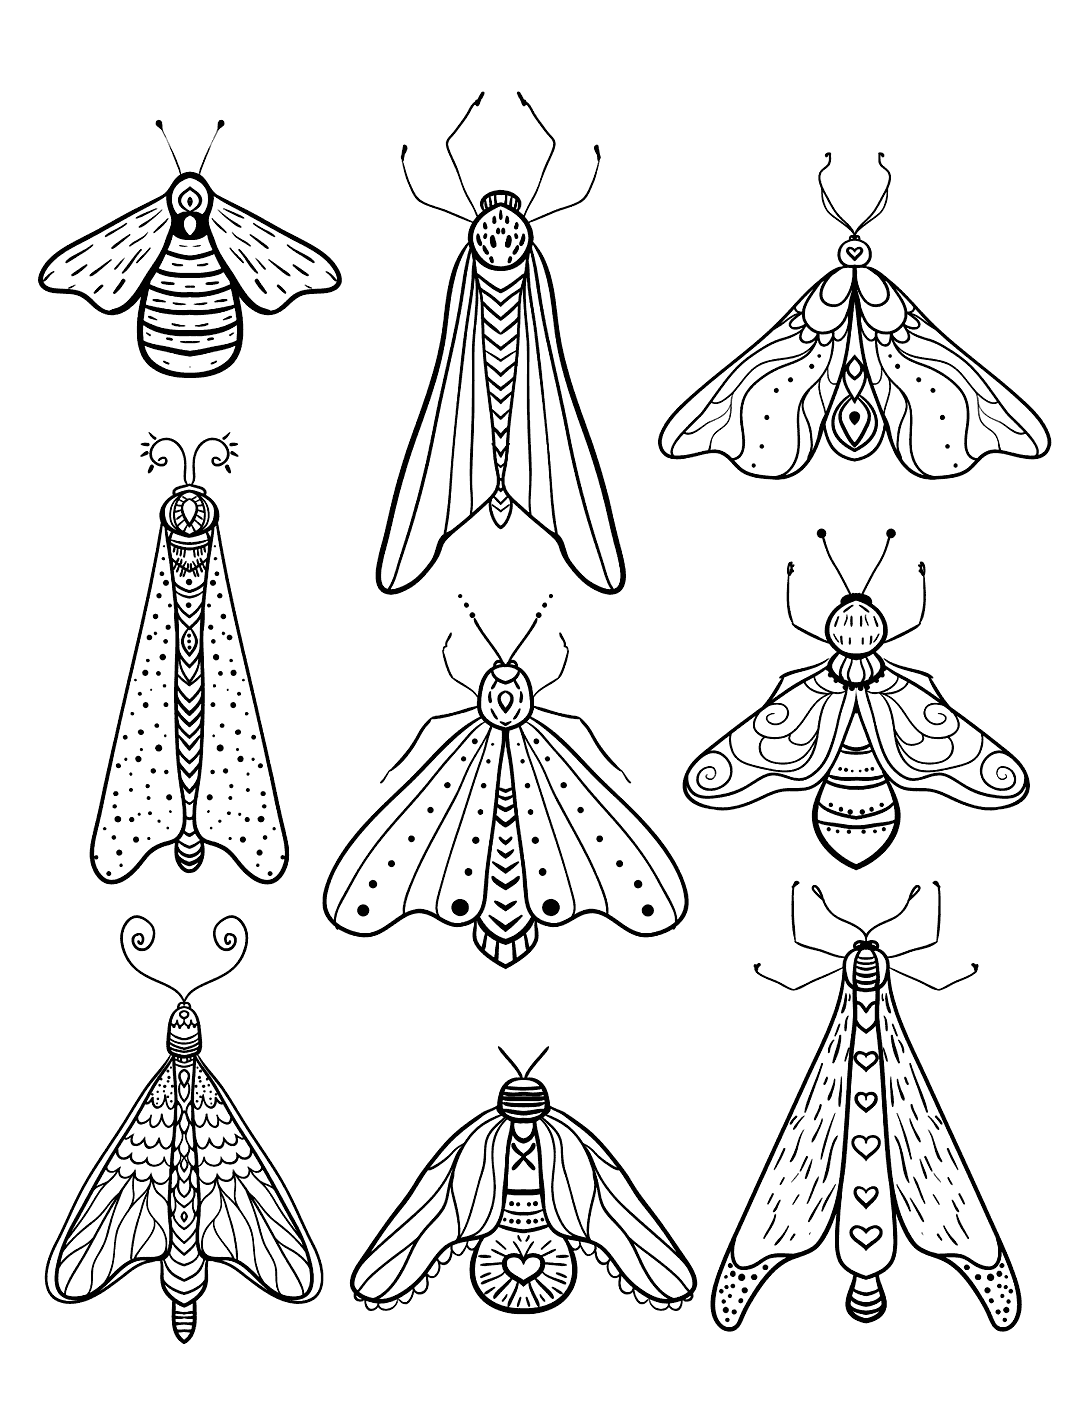 Printable Insects Coloring Page